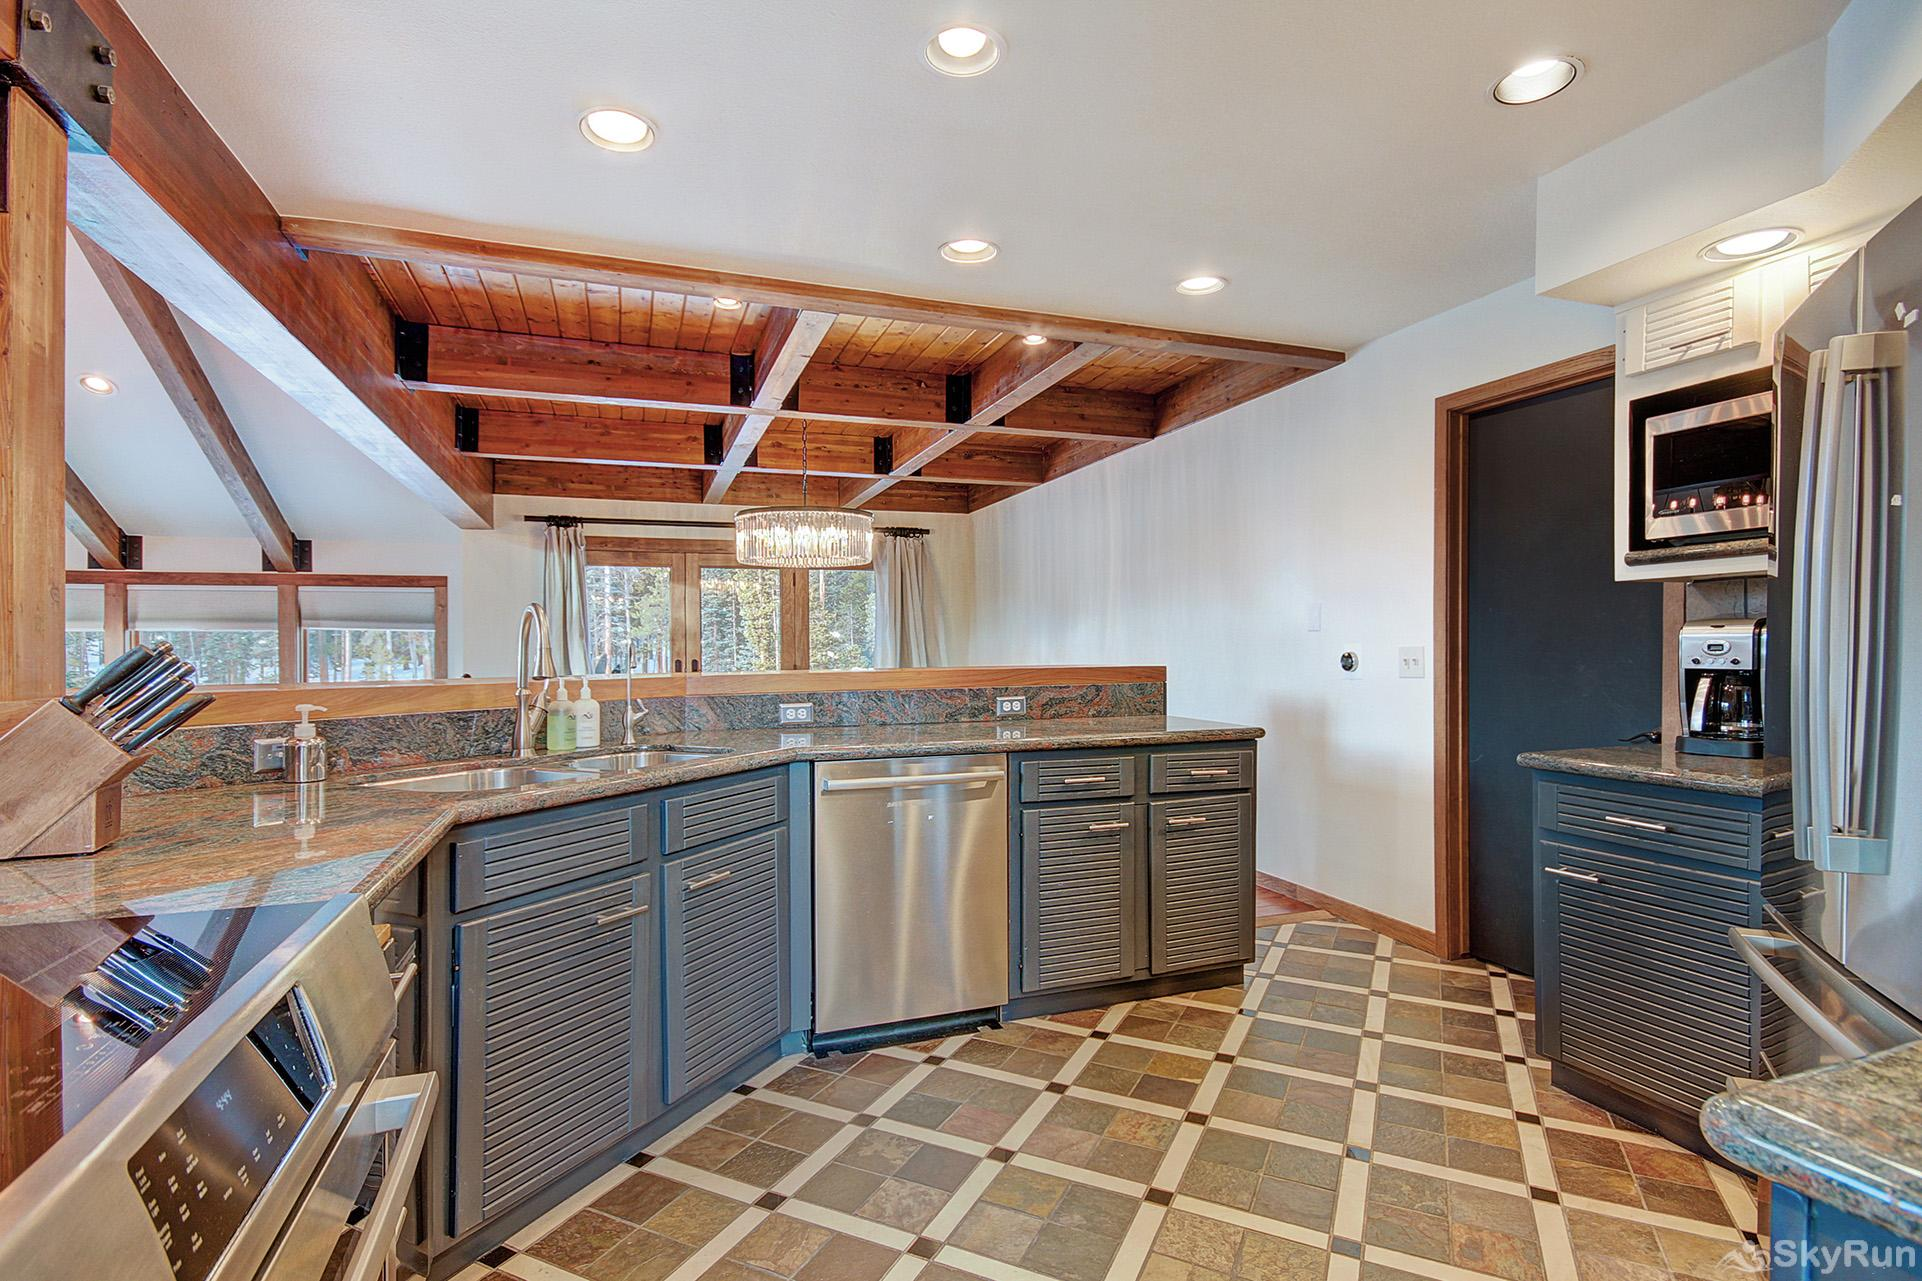 Summit Solitude Estate Fully equipped kitchen with stainless steel appliances